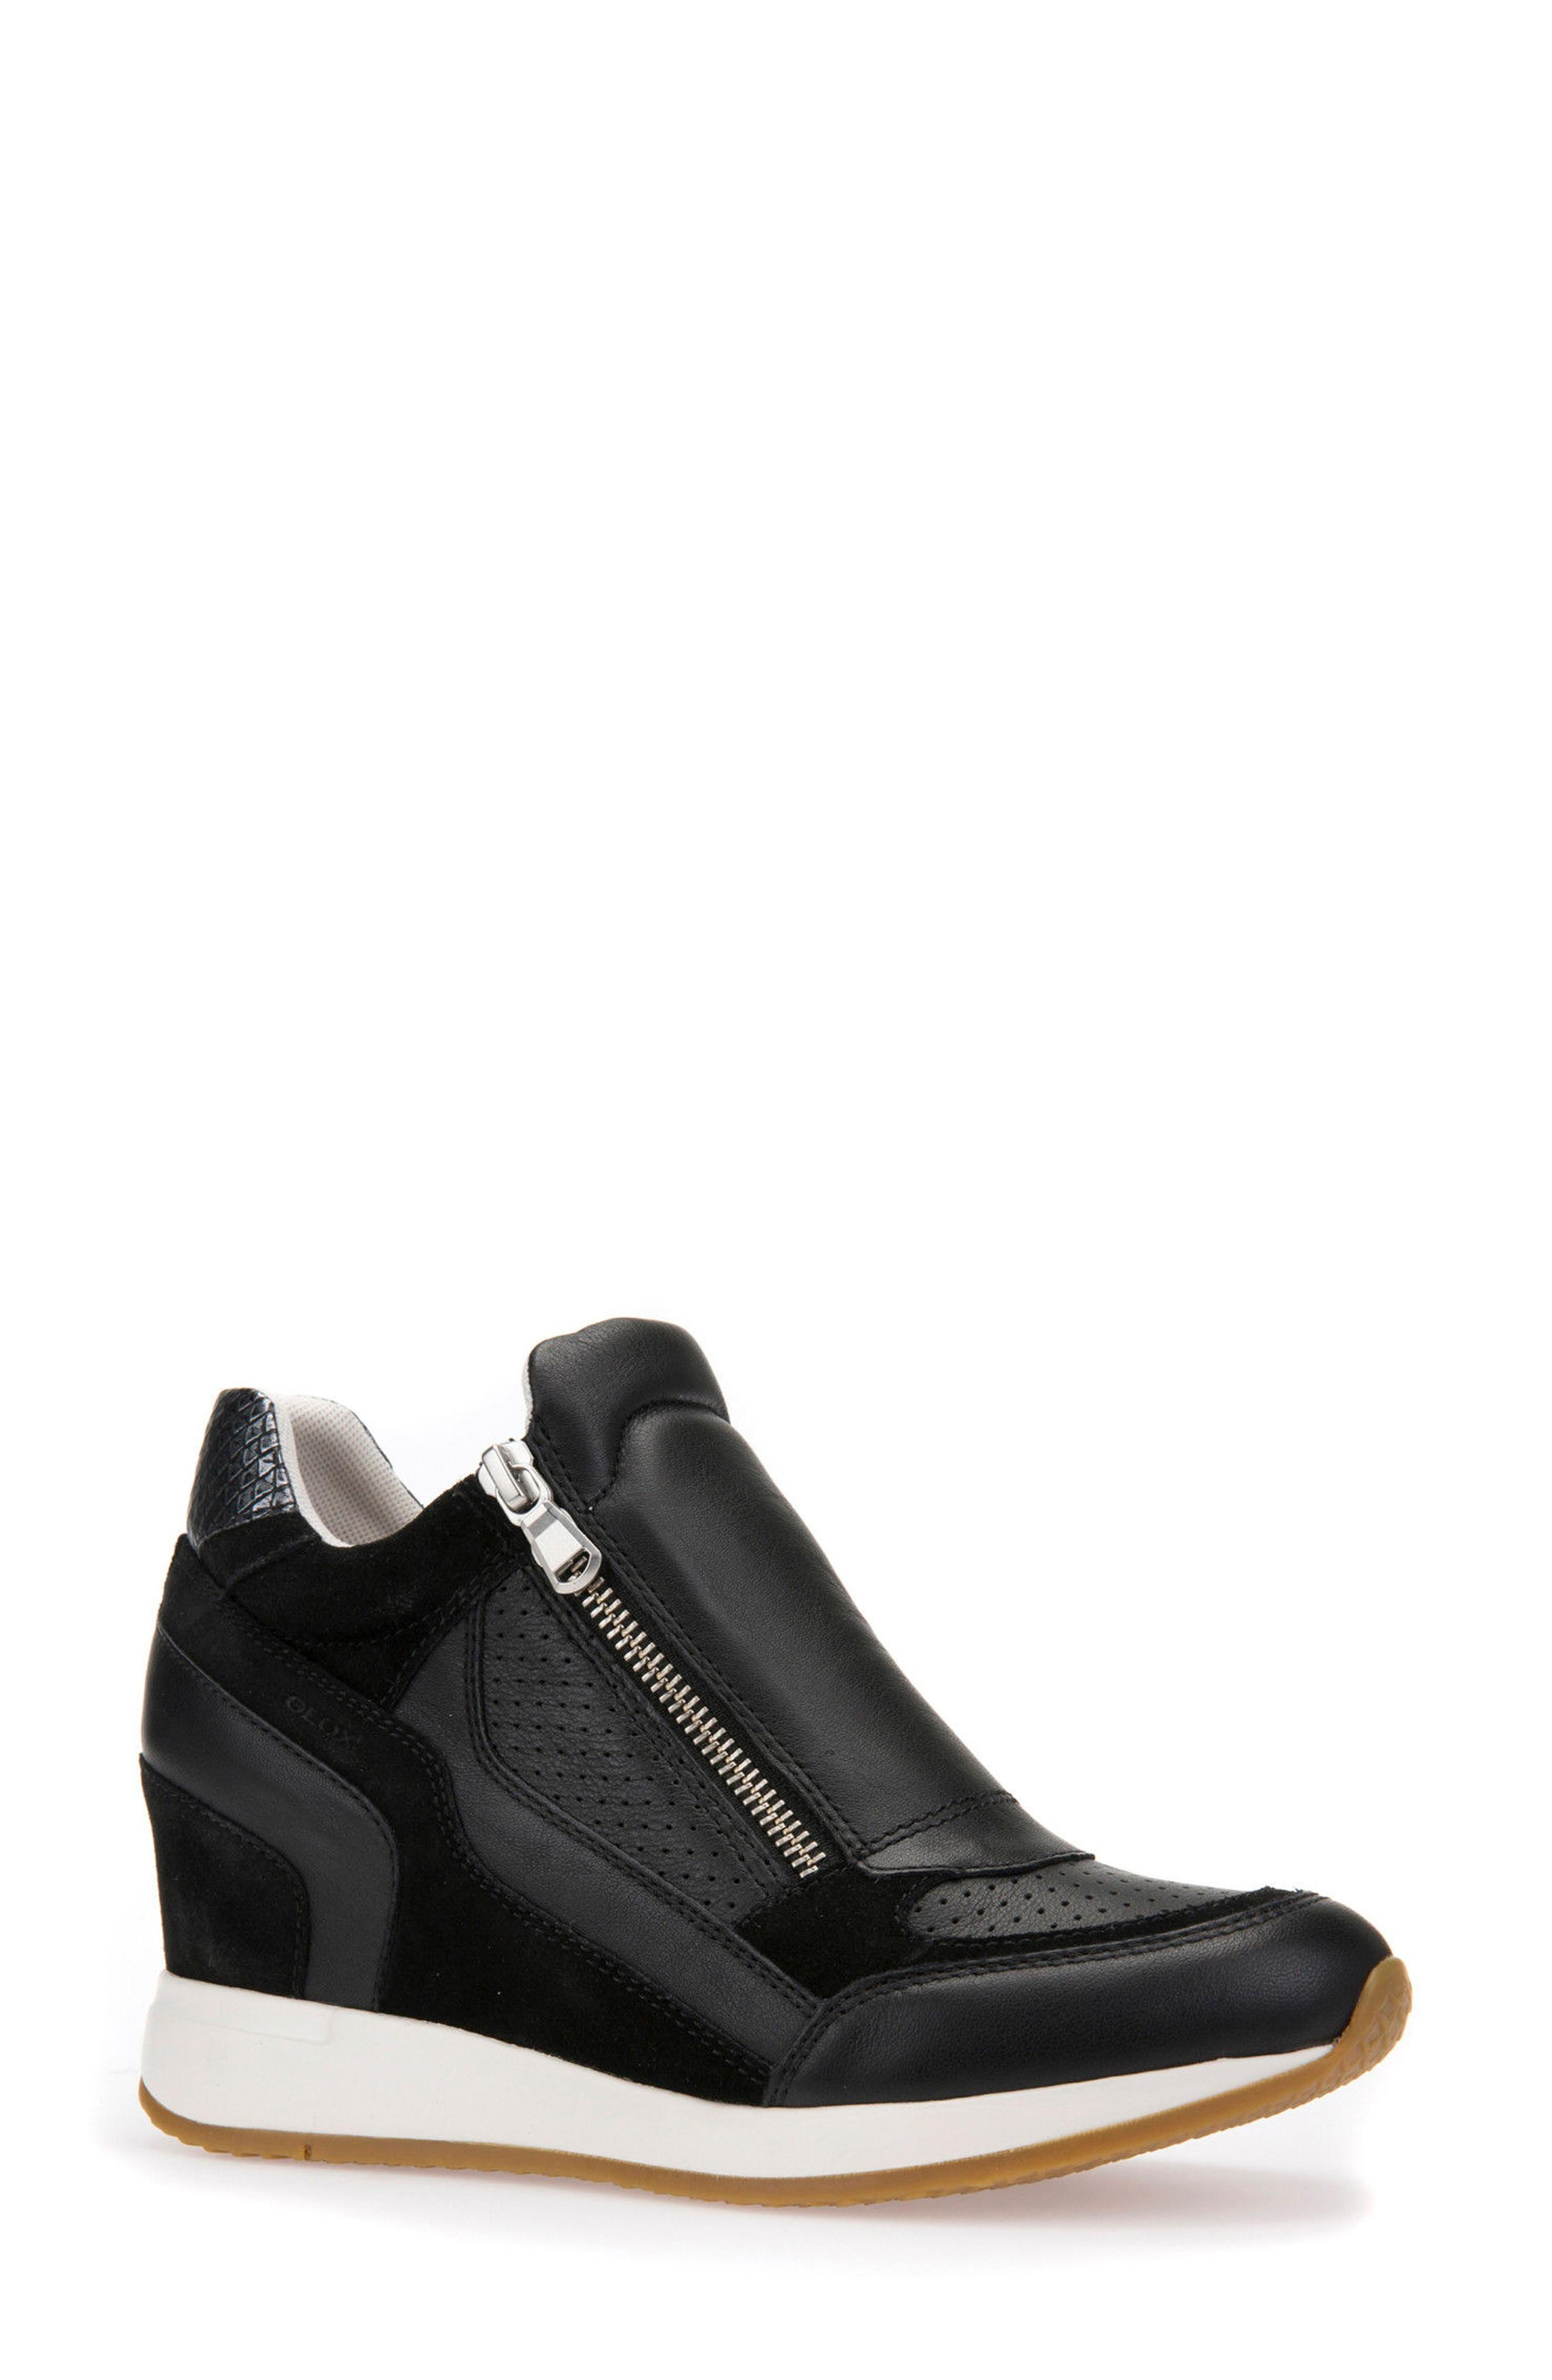 29f67c3157d8 Geox Nydame Wedge Sneaker In Black Leather